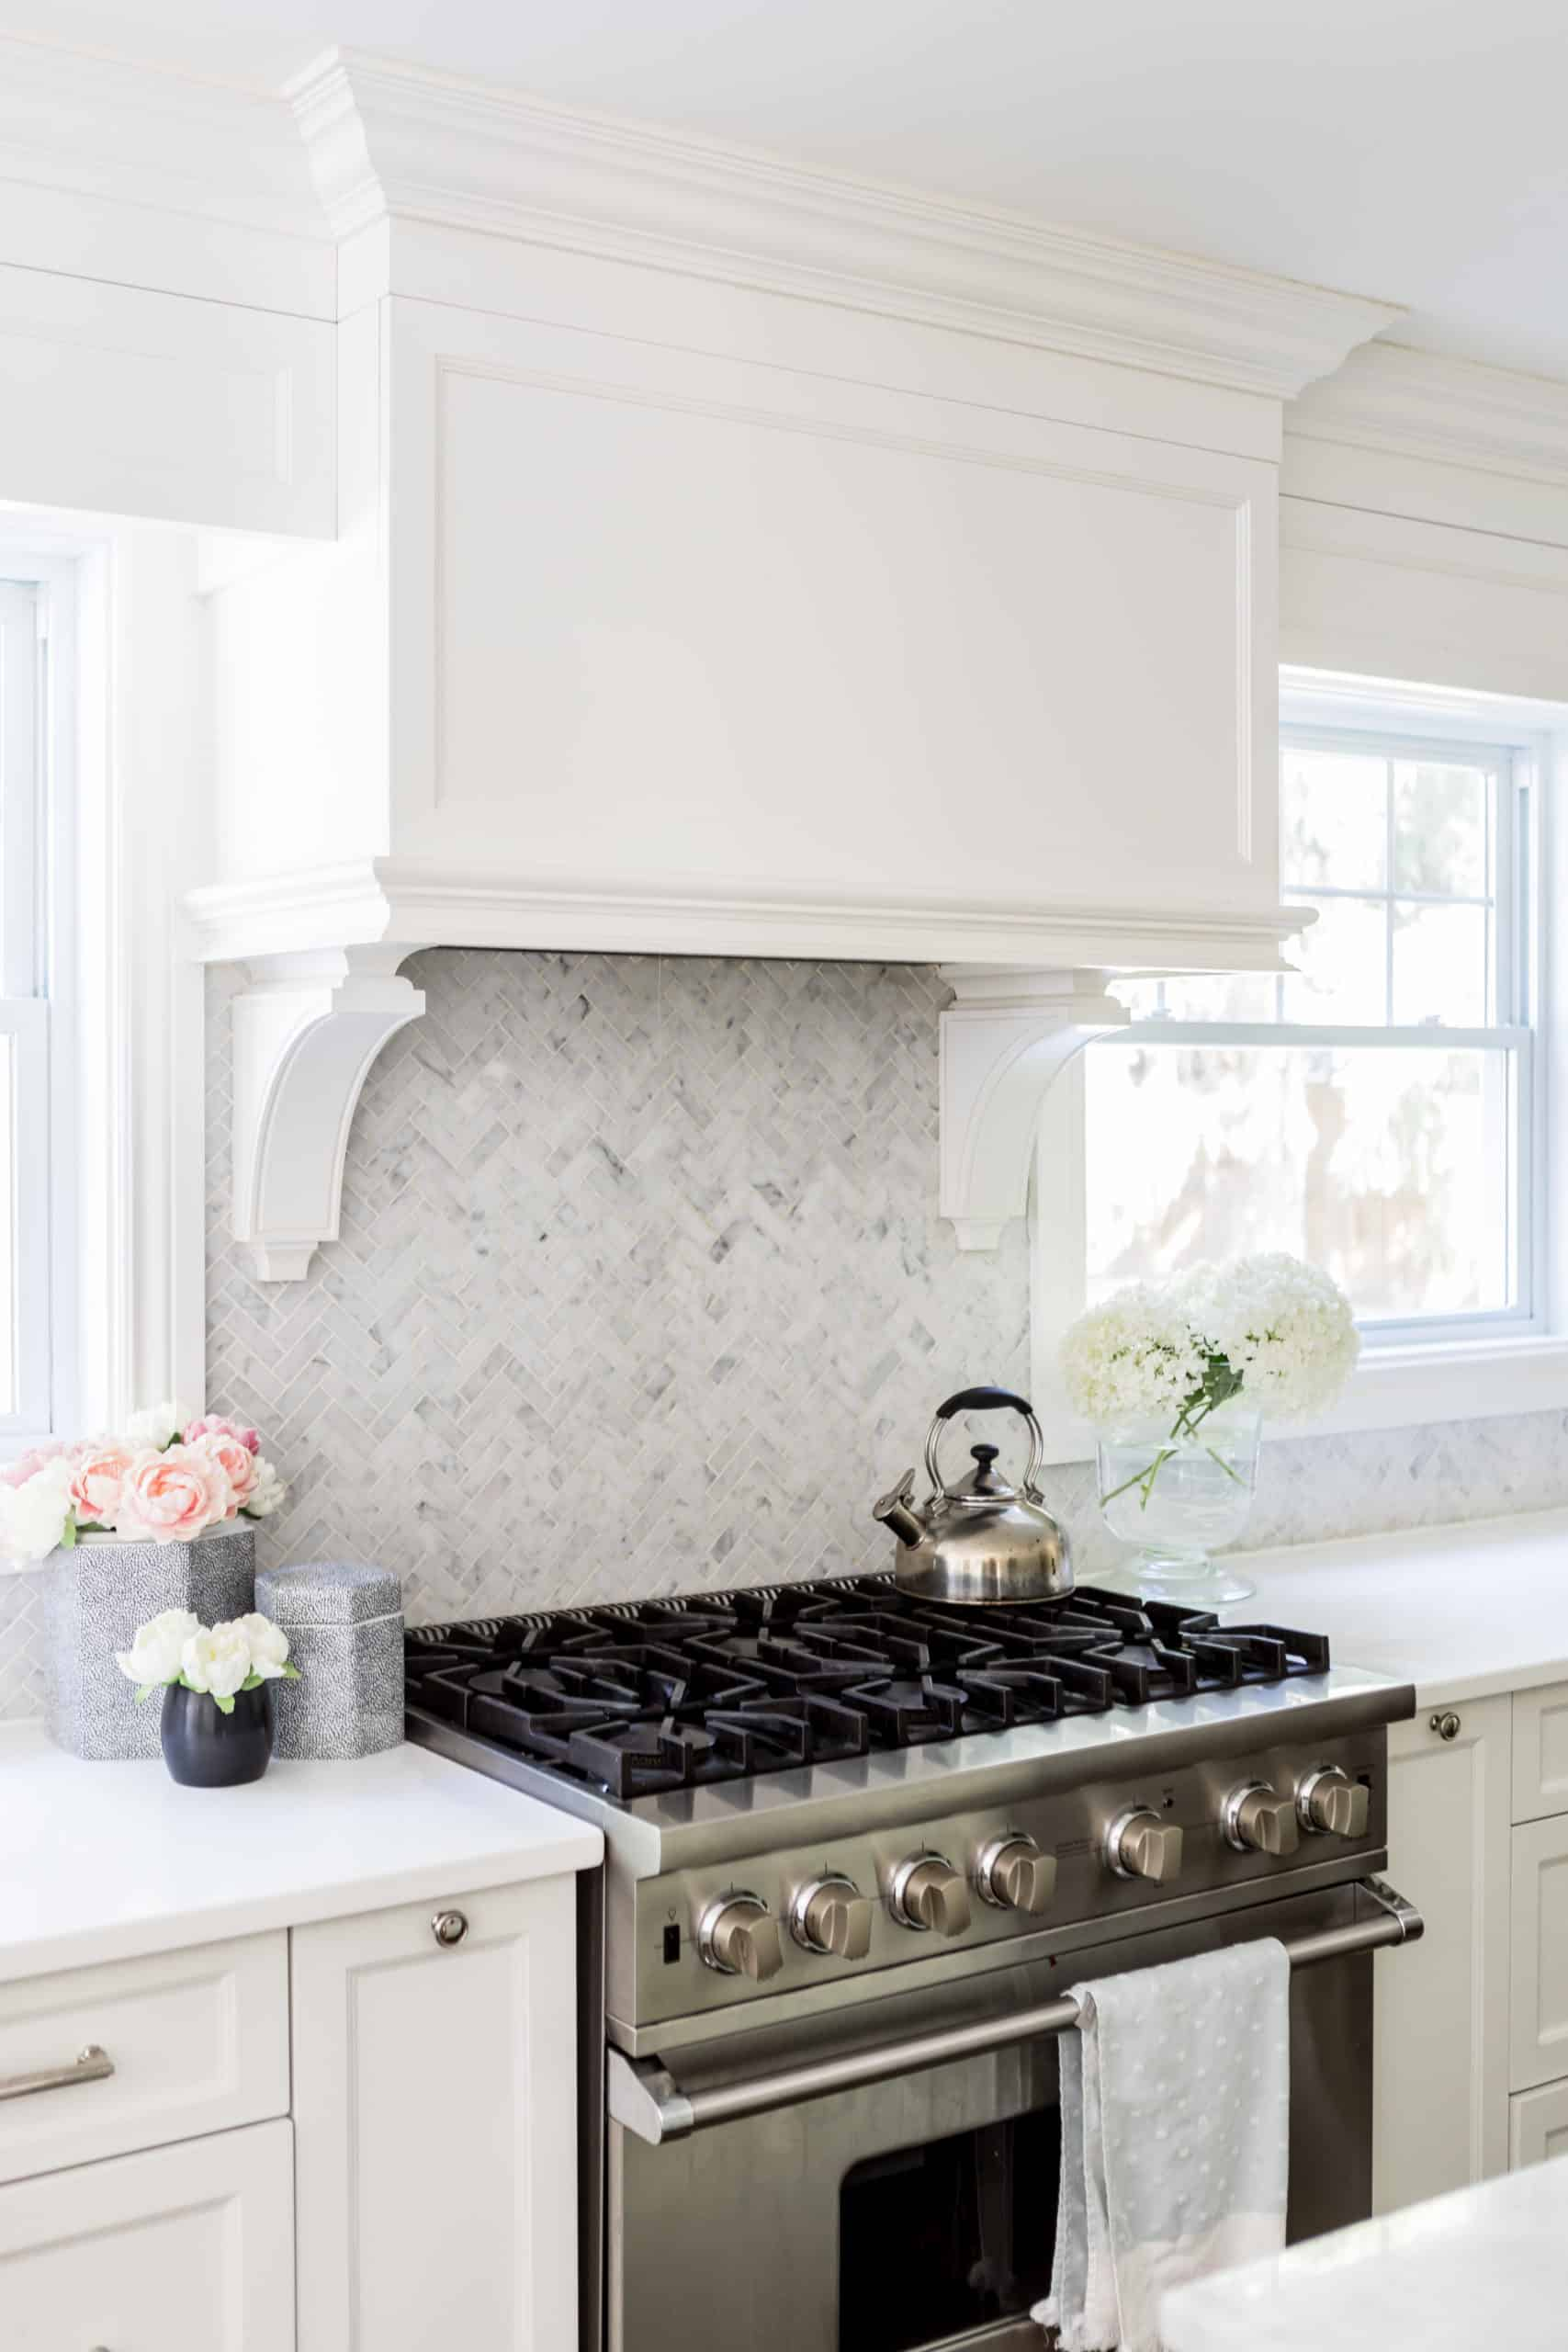 Bright white kitchen with a focus on the oven